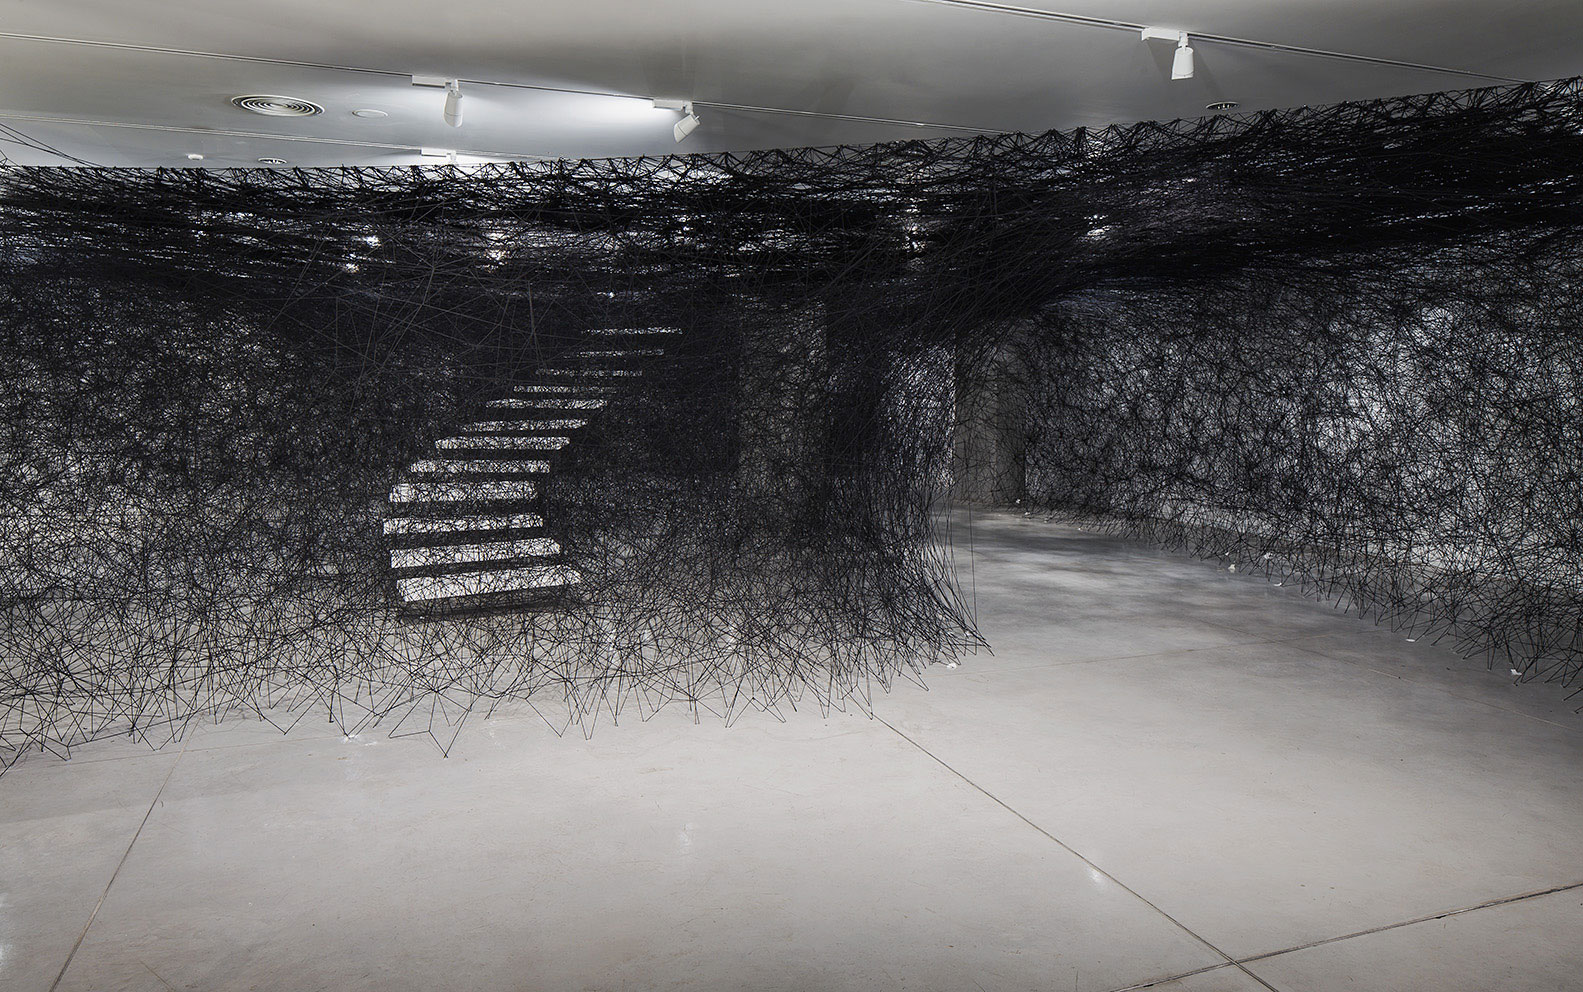 Installation-Photograph-4,-Piranesi-Shiota--Prisons-of-the-Imagination-at-the-Tel-Aviv-Museum-of-Art